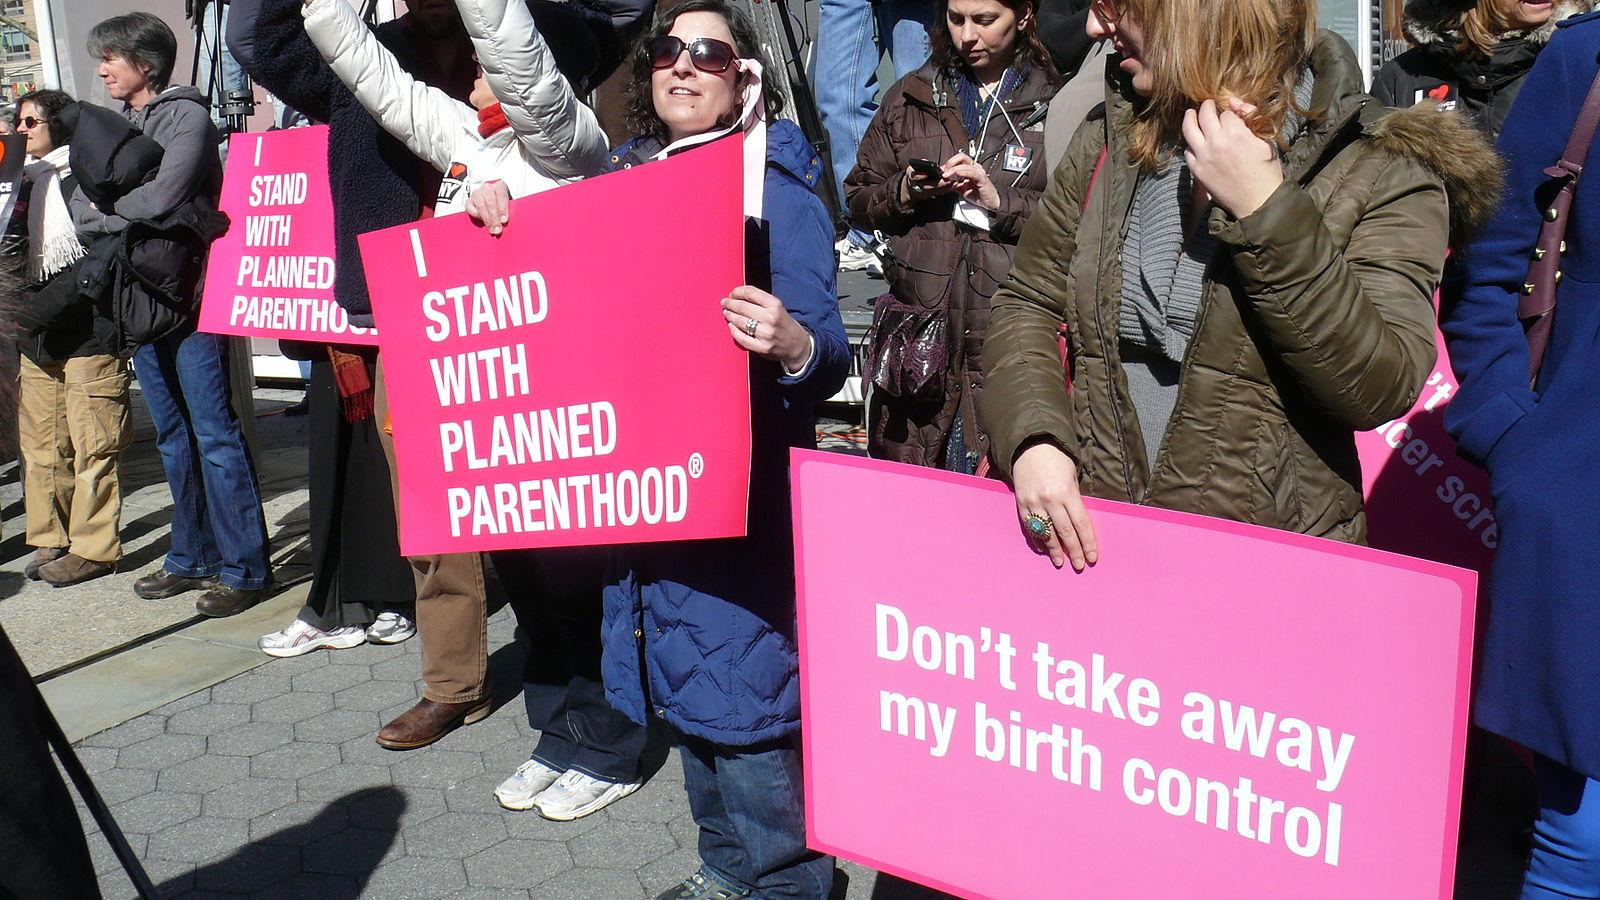 Emerging Planned Parenthood club offers various resources for marginalized groups